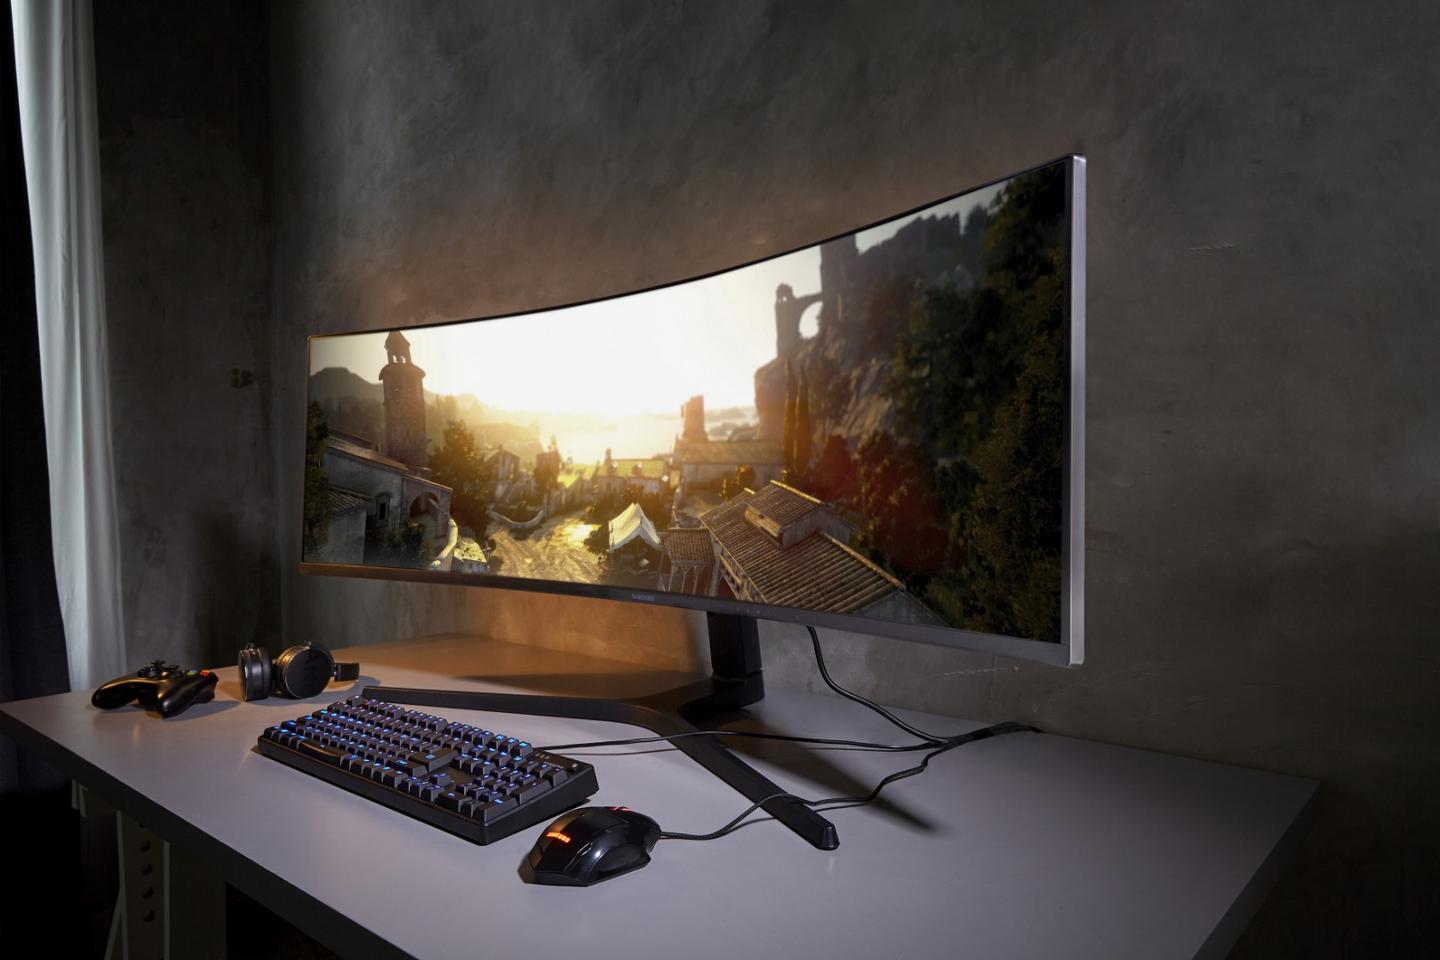 Samsung's CRG9 is an ultra-wide curved gaming monitor